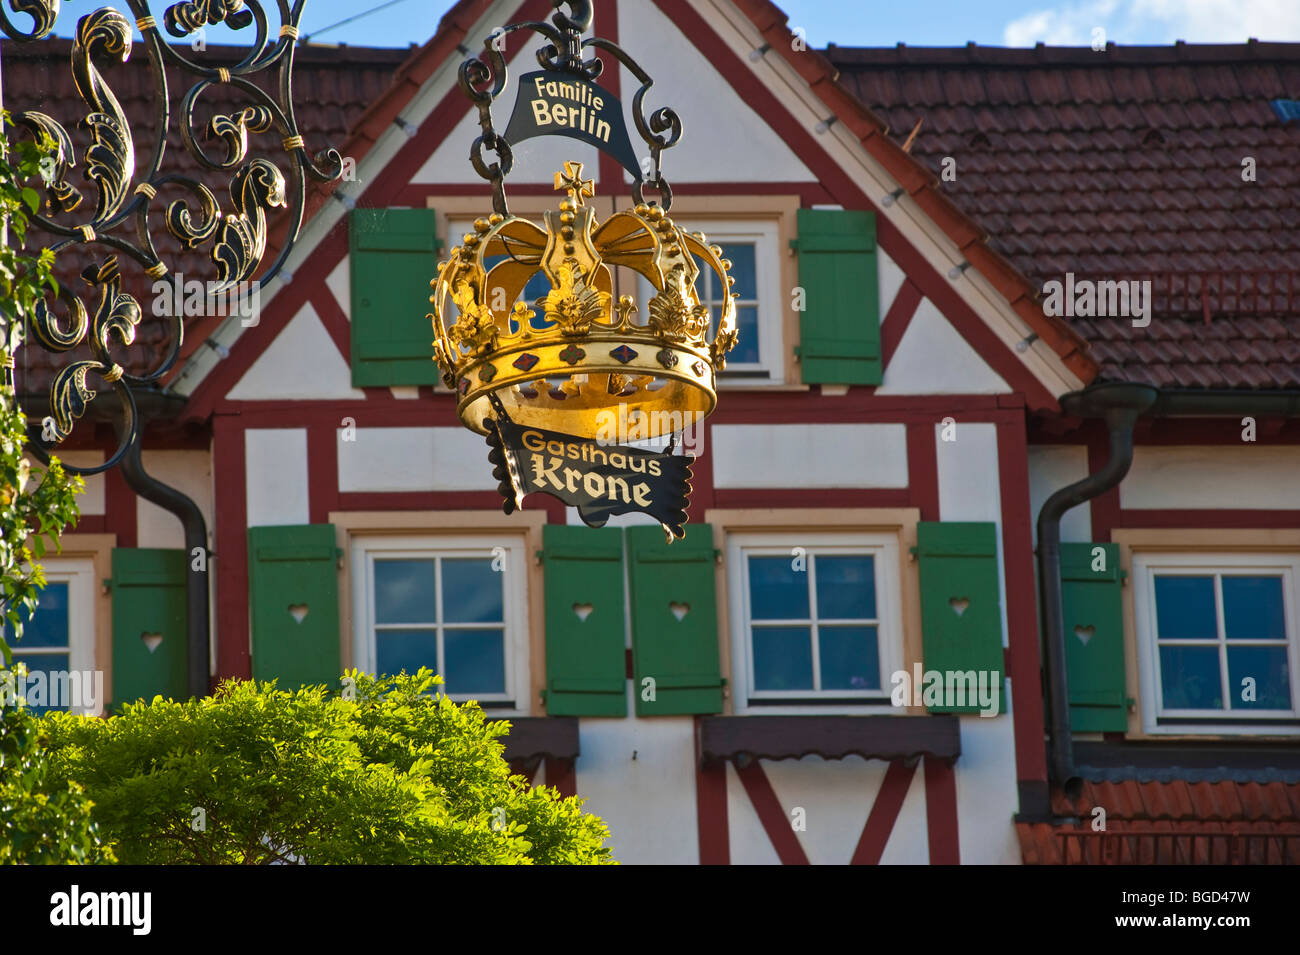 Hanging sign of a tavern, Bad Teinach Zavelstein, Black Forest, Baden-Wuerttemberg, Germany, Europe - Stock Image